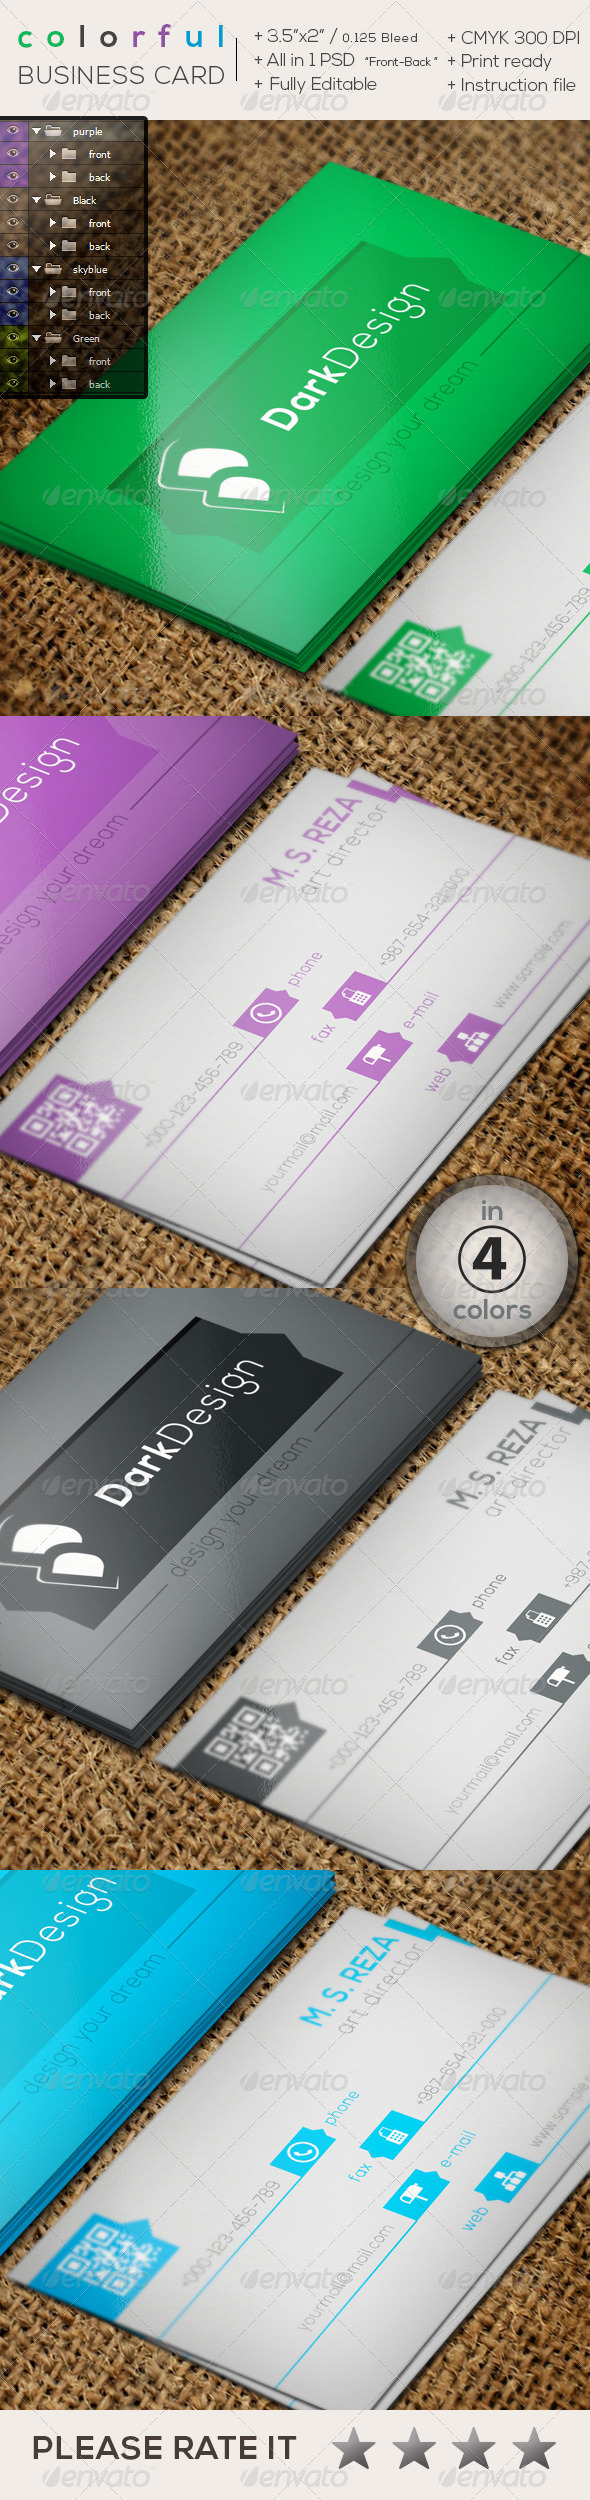 GraphicRiver Colorful Creative Business Card 8598002